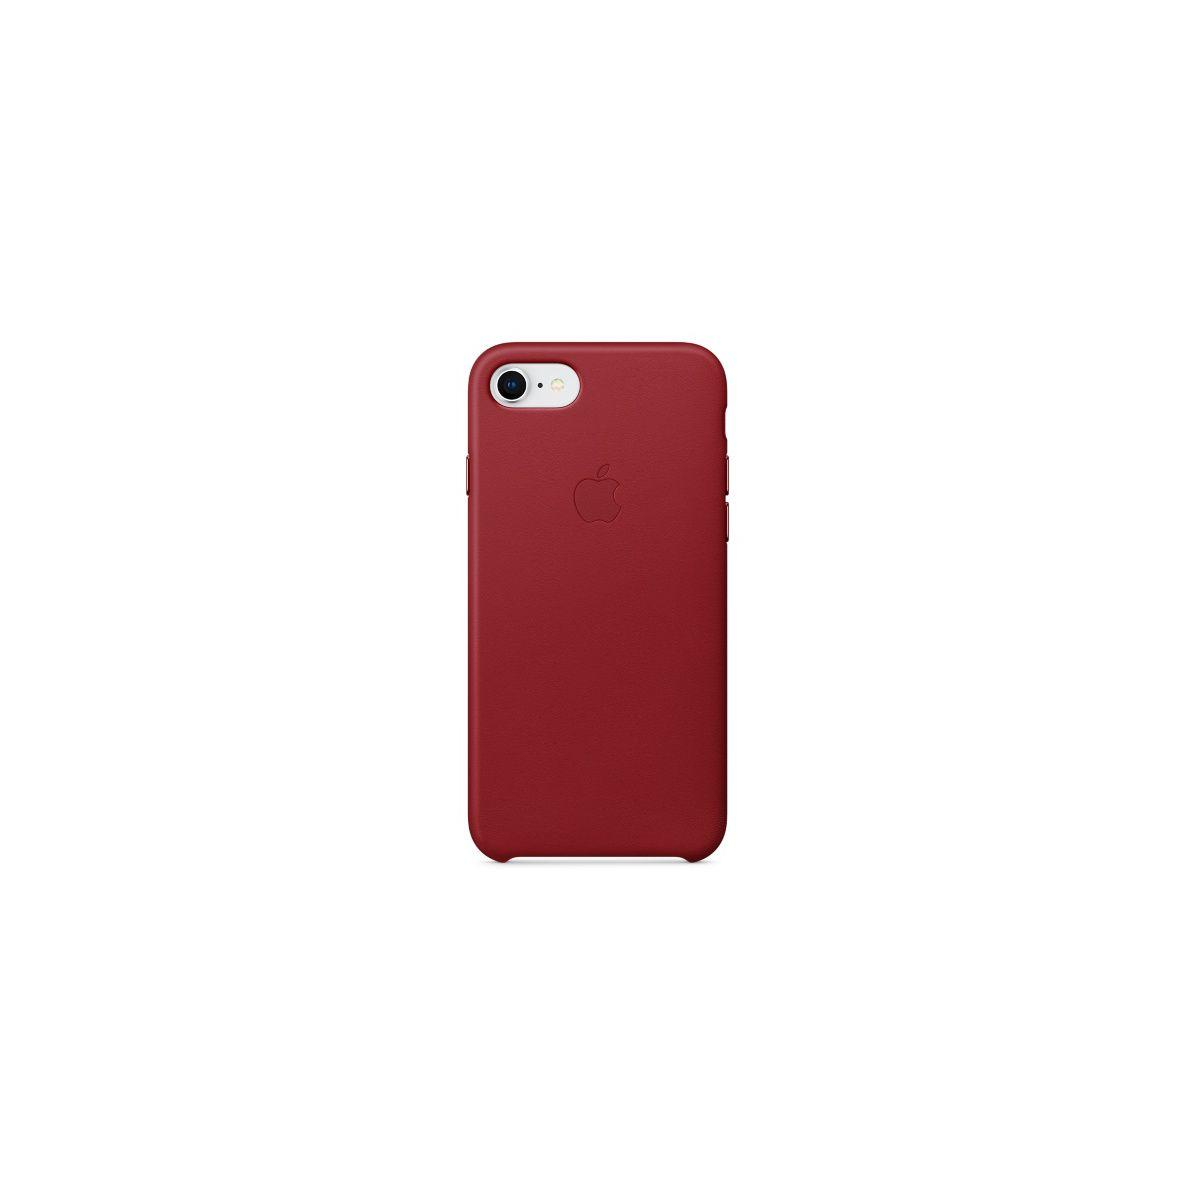 Coque apple iphone 7/8 cuir (product)red (photo)